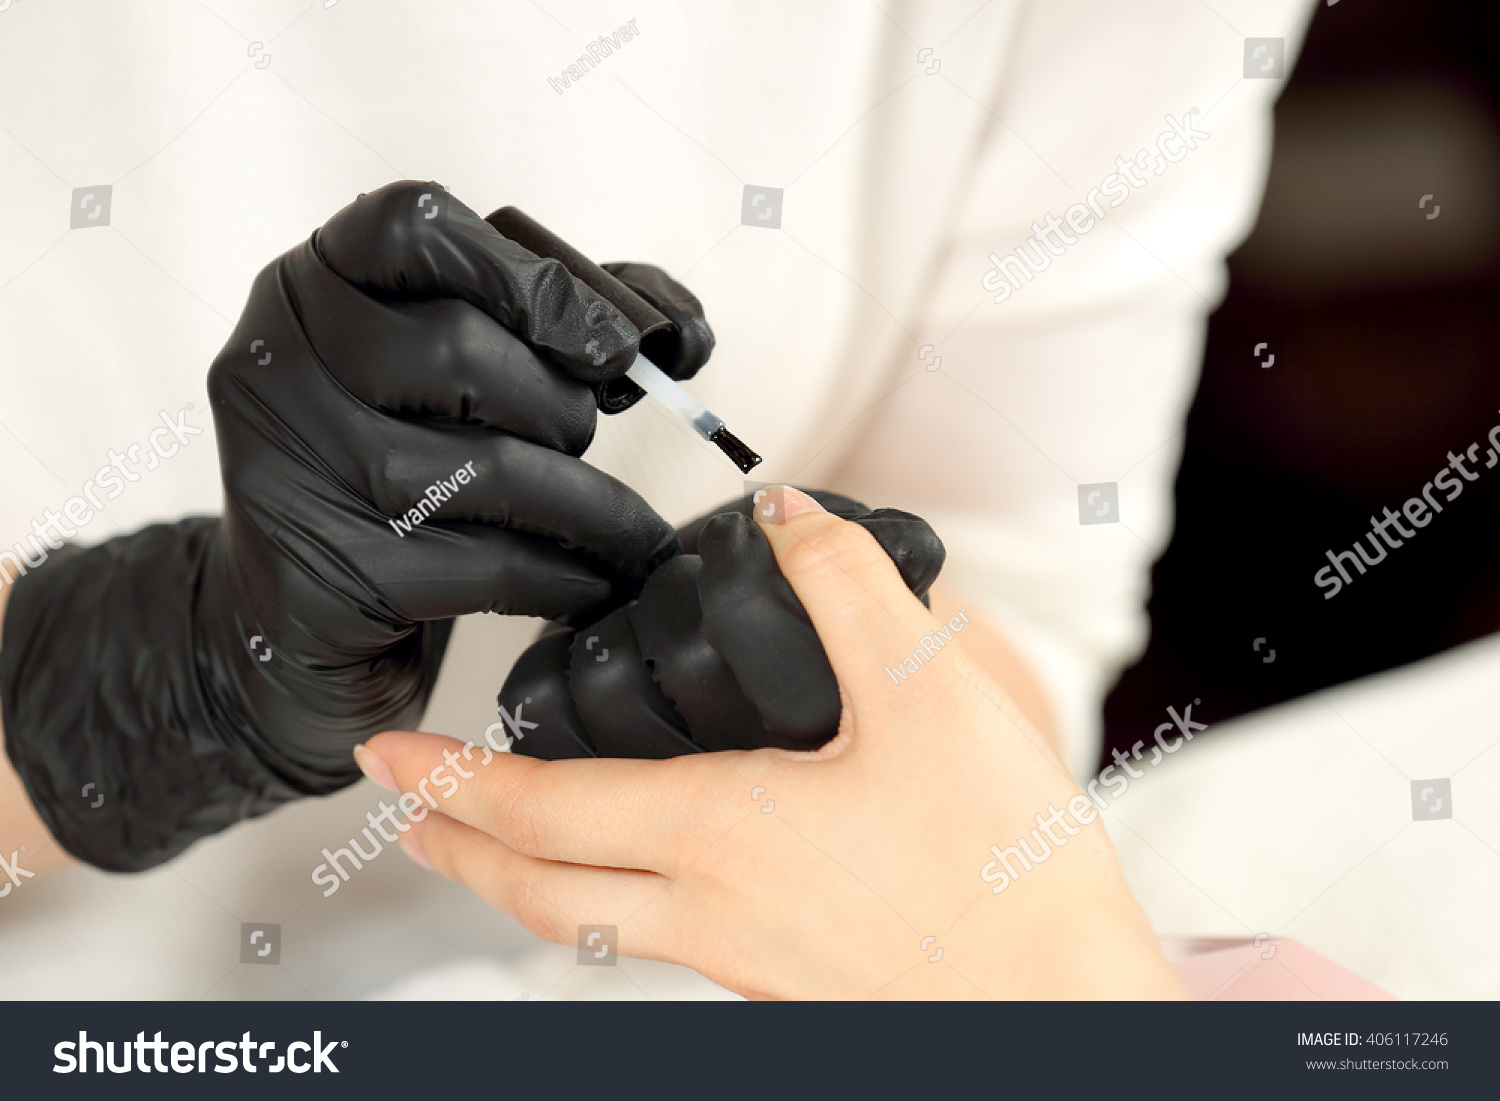 Black gloves with nails - Save To A Lightbox